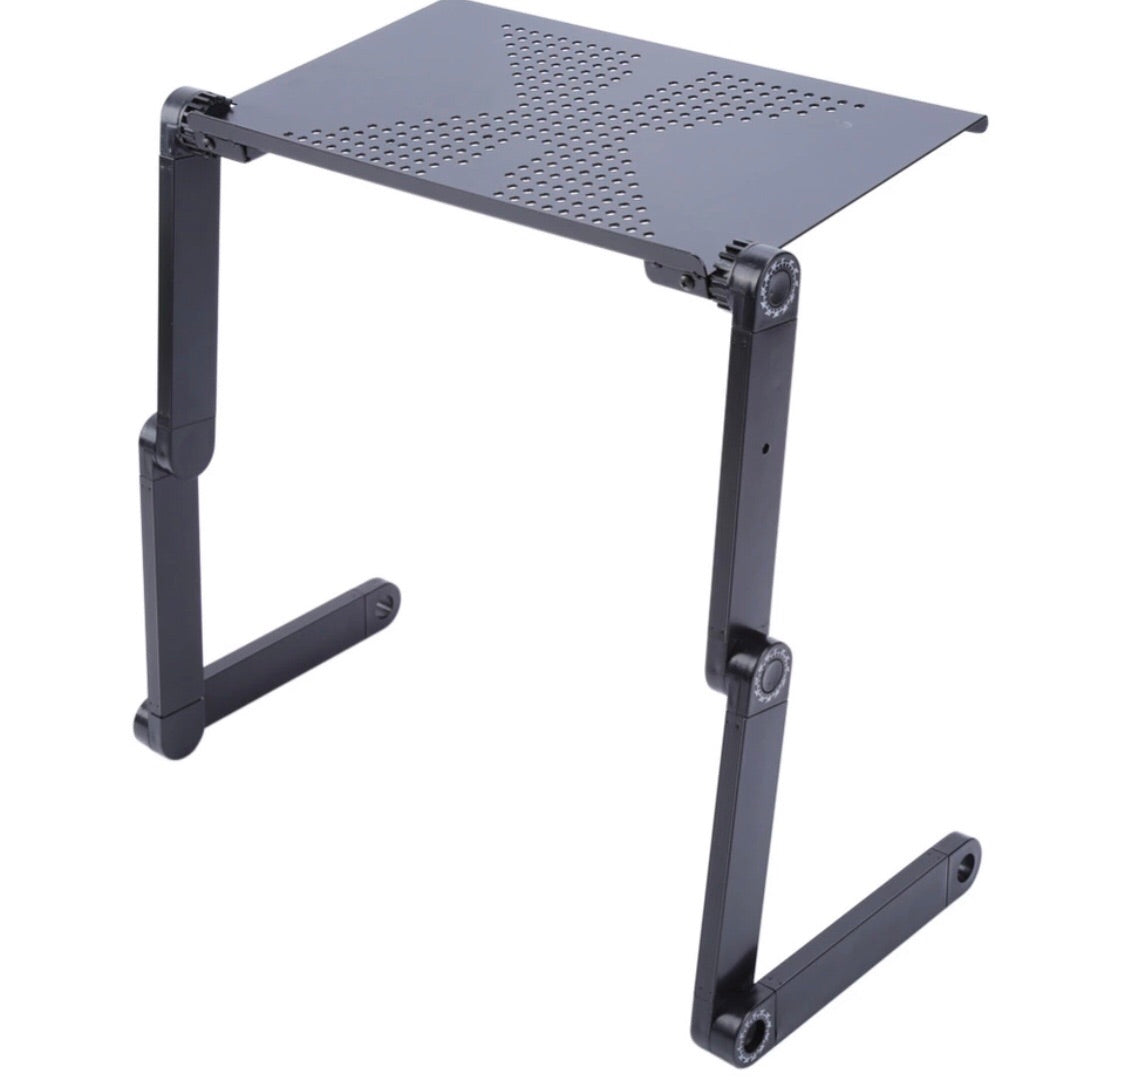 Adjustable table for  portable and laptop